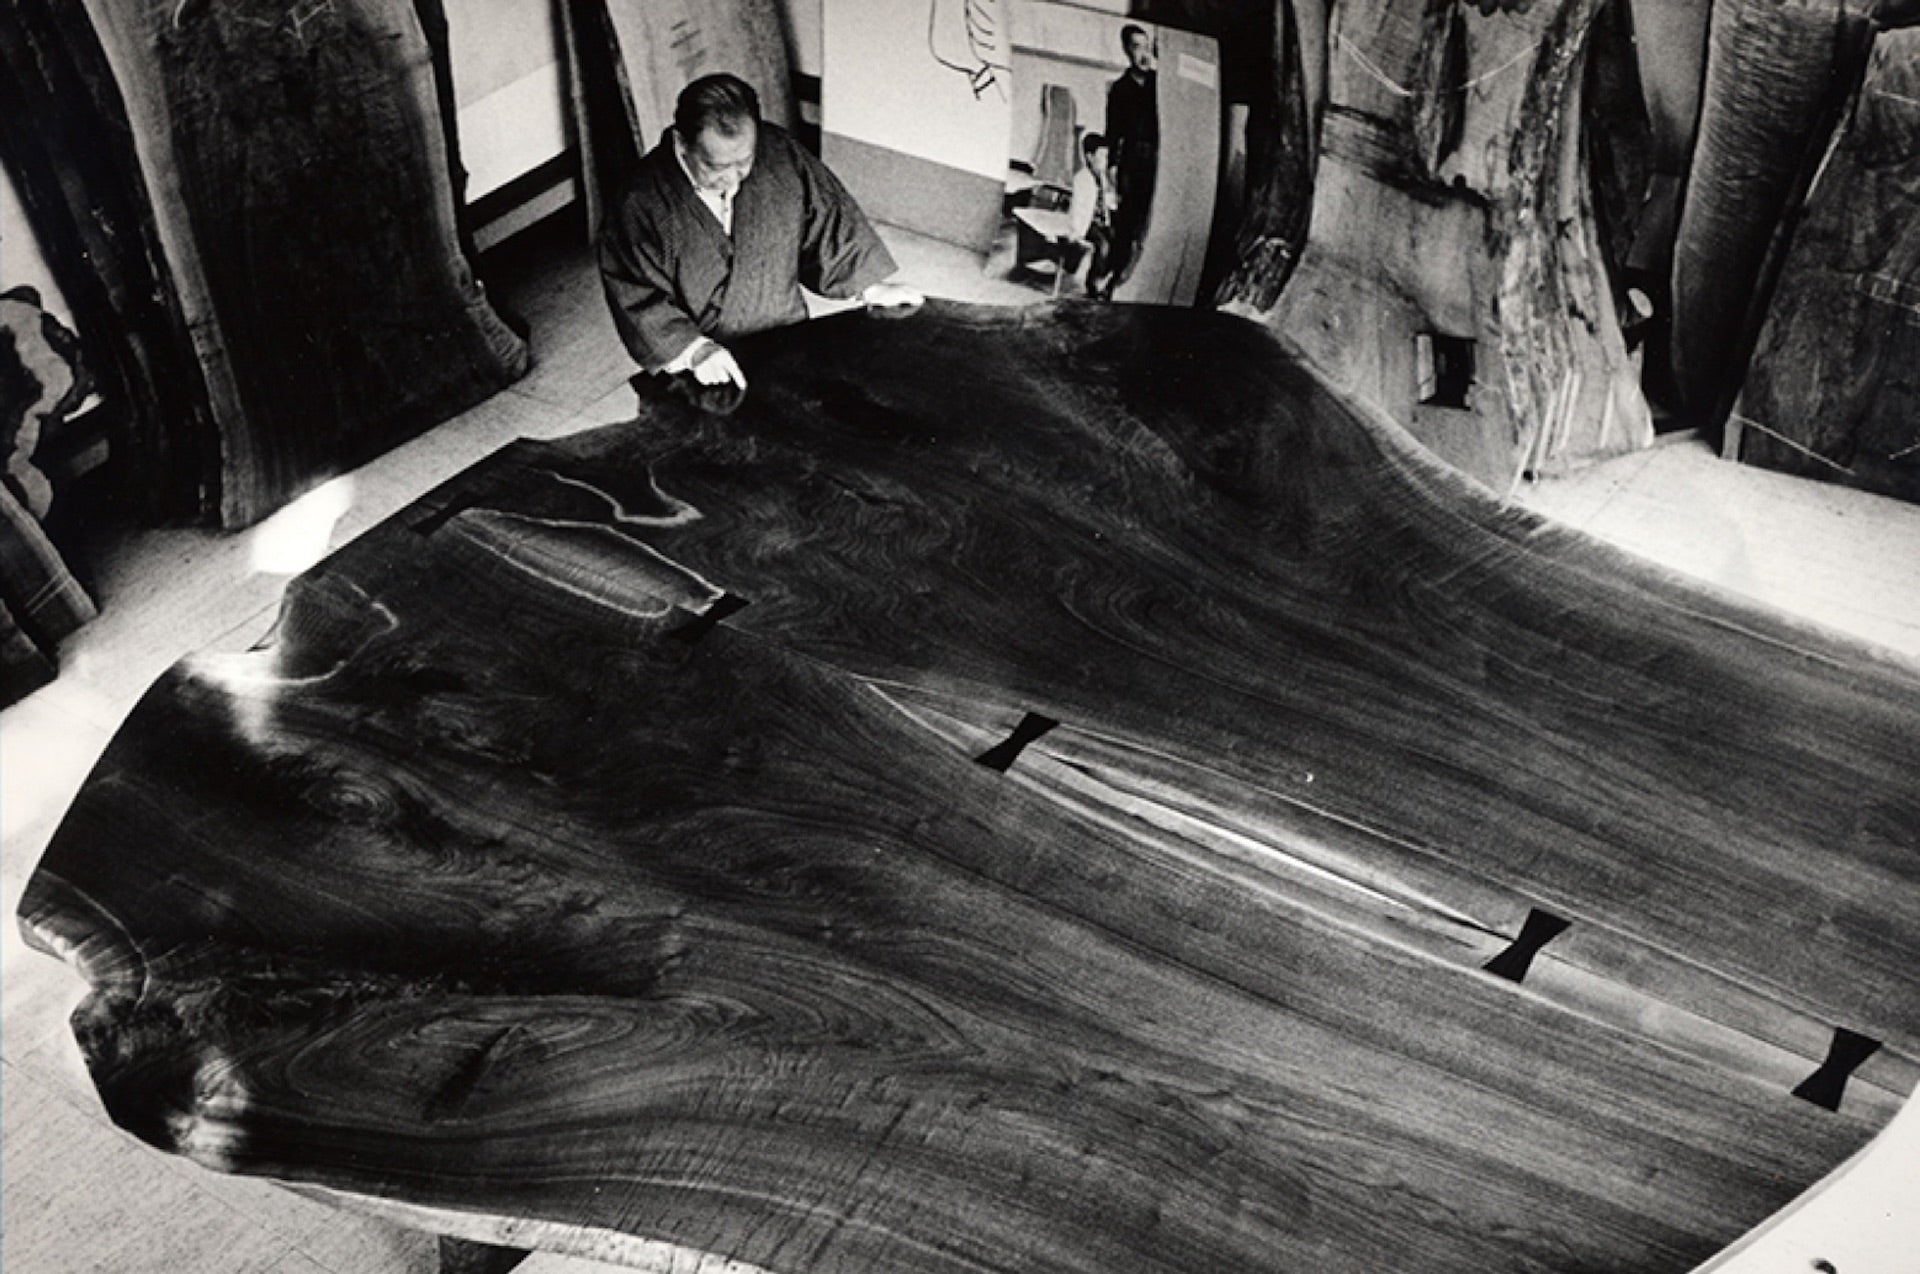 Nakashima's Peace Altar for the Cathedral of St John The Divine in New York City, installed 1986. Photo © Ezra Stoller Archive - Esto; courtesy of George Nakashima Woodworkers